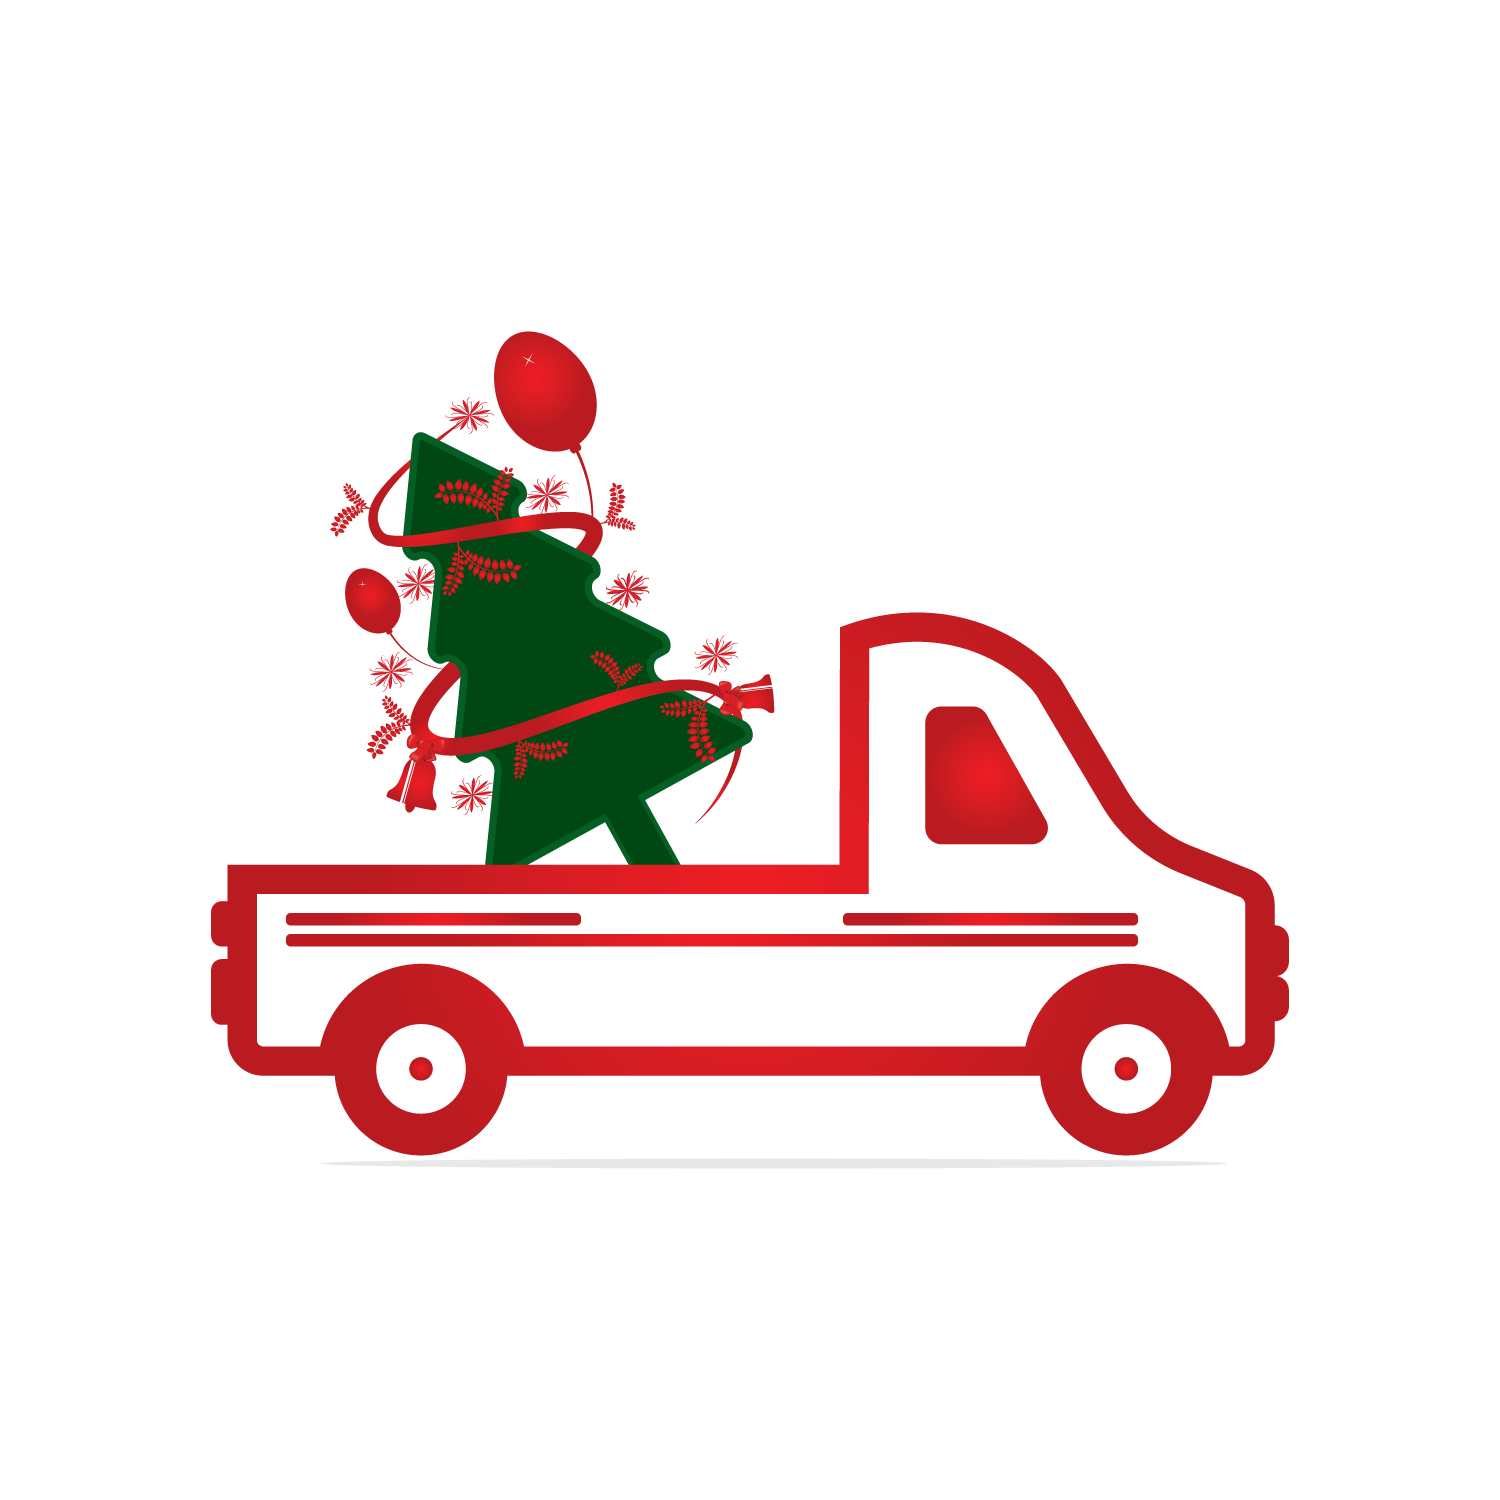 Christmas truck back with tree svg, dxf, pdf, jpeg, png file example image 3